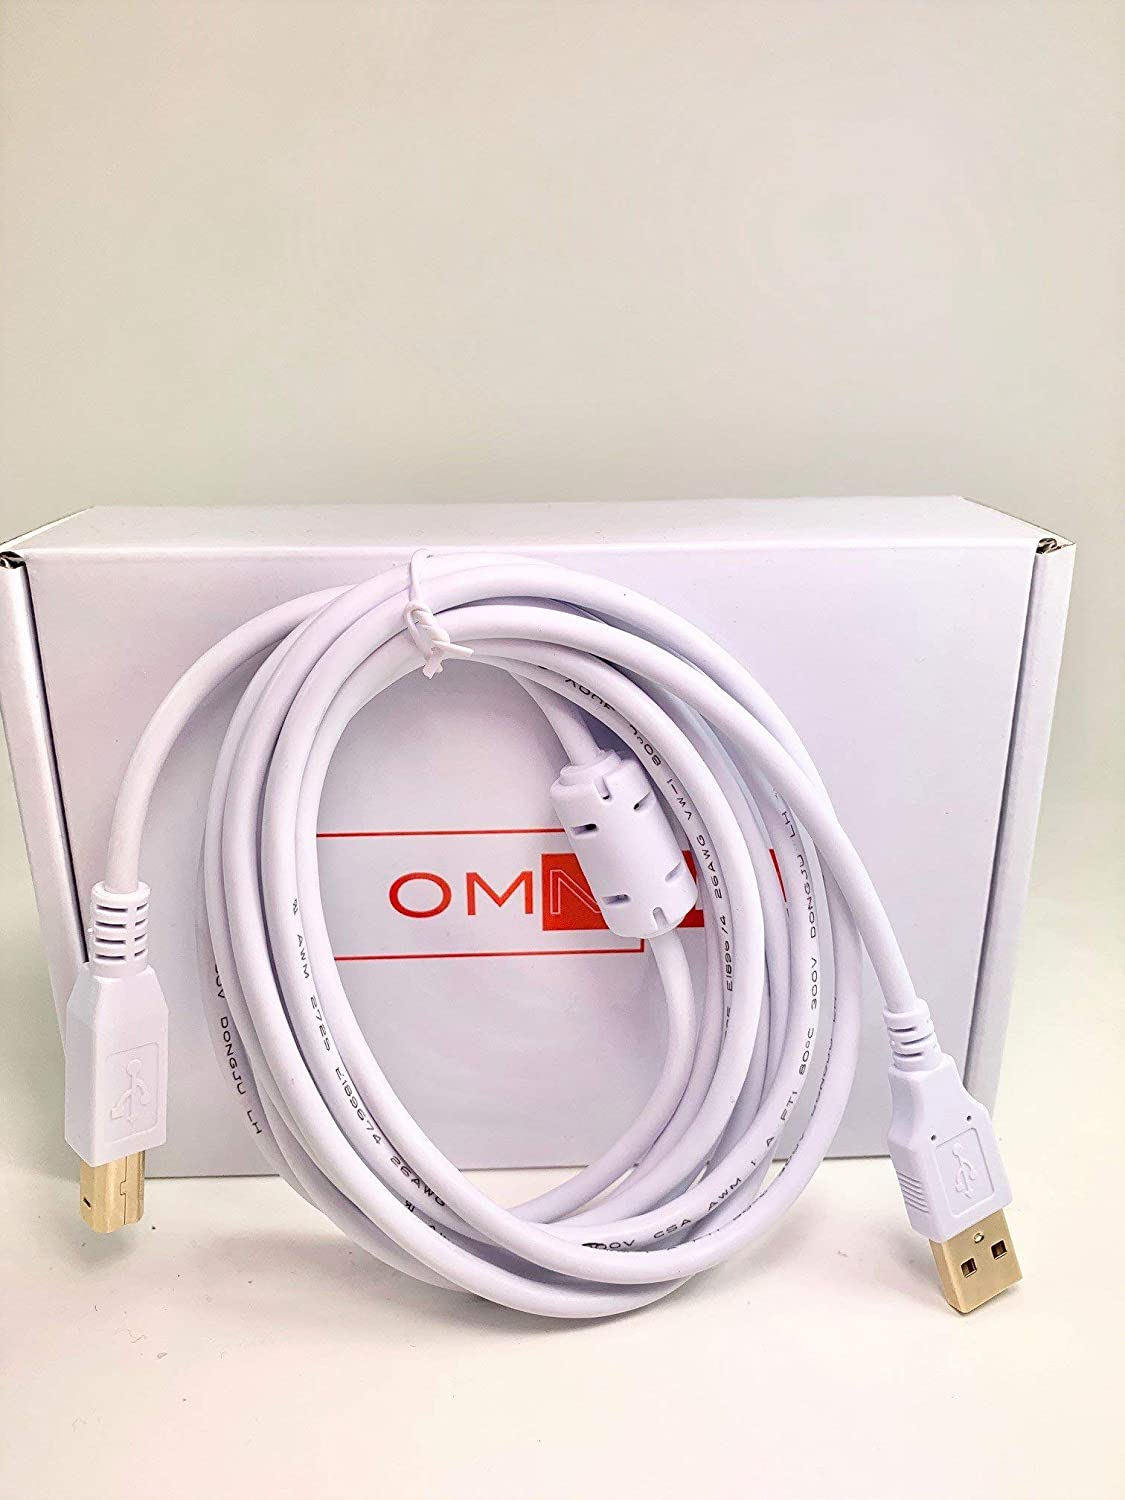 OMNIHIL 8FT-White High Speed USB 2.0 Cable Compatible with Fujitsu fi-6670A